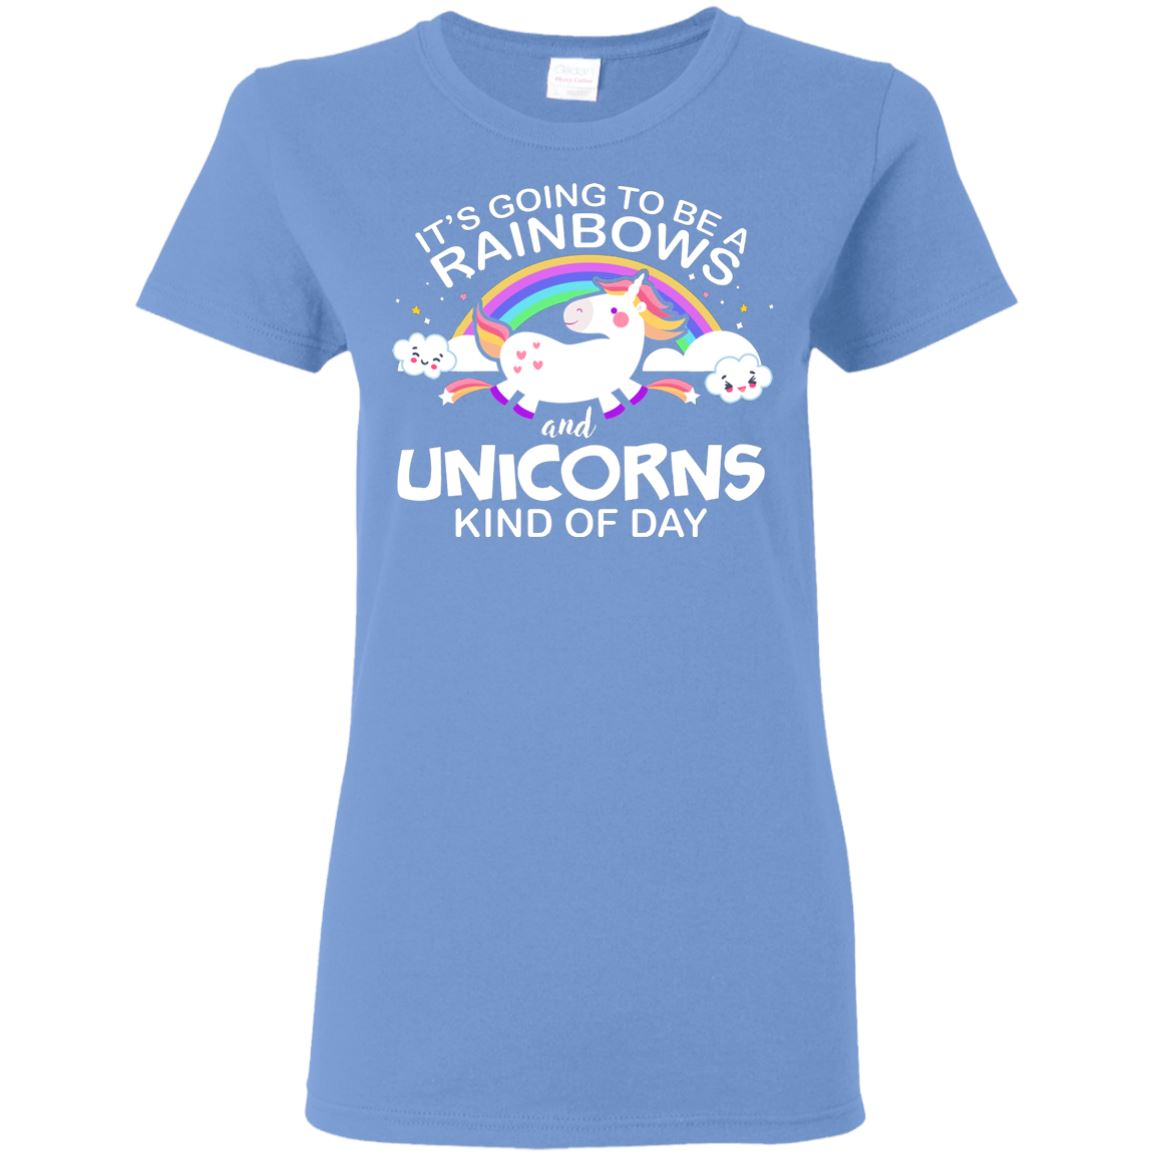 Unicorn & Rainbow Kind of Day Women's T-Shirt Apparel Carolina Blue S